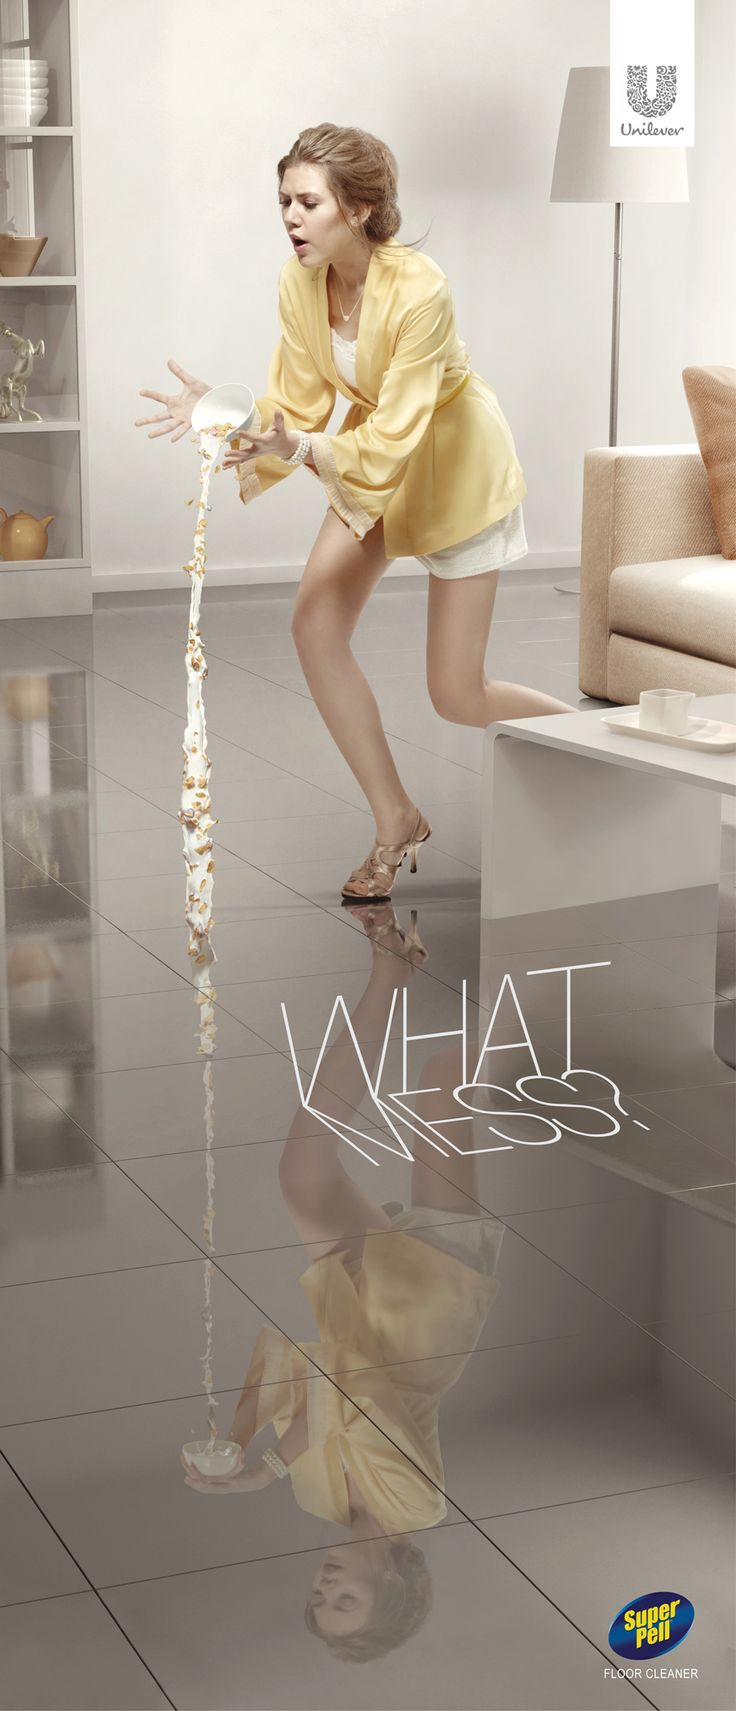 Super Pell Floor Cleaner: No mess #Cereal #Advertising #Unilever